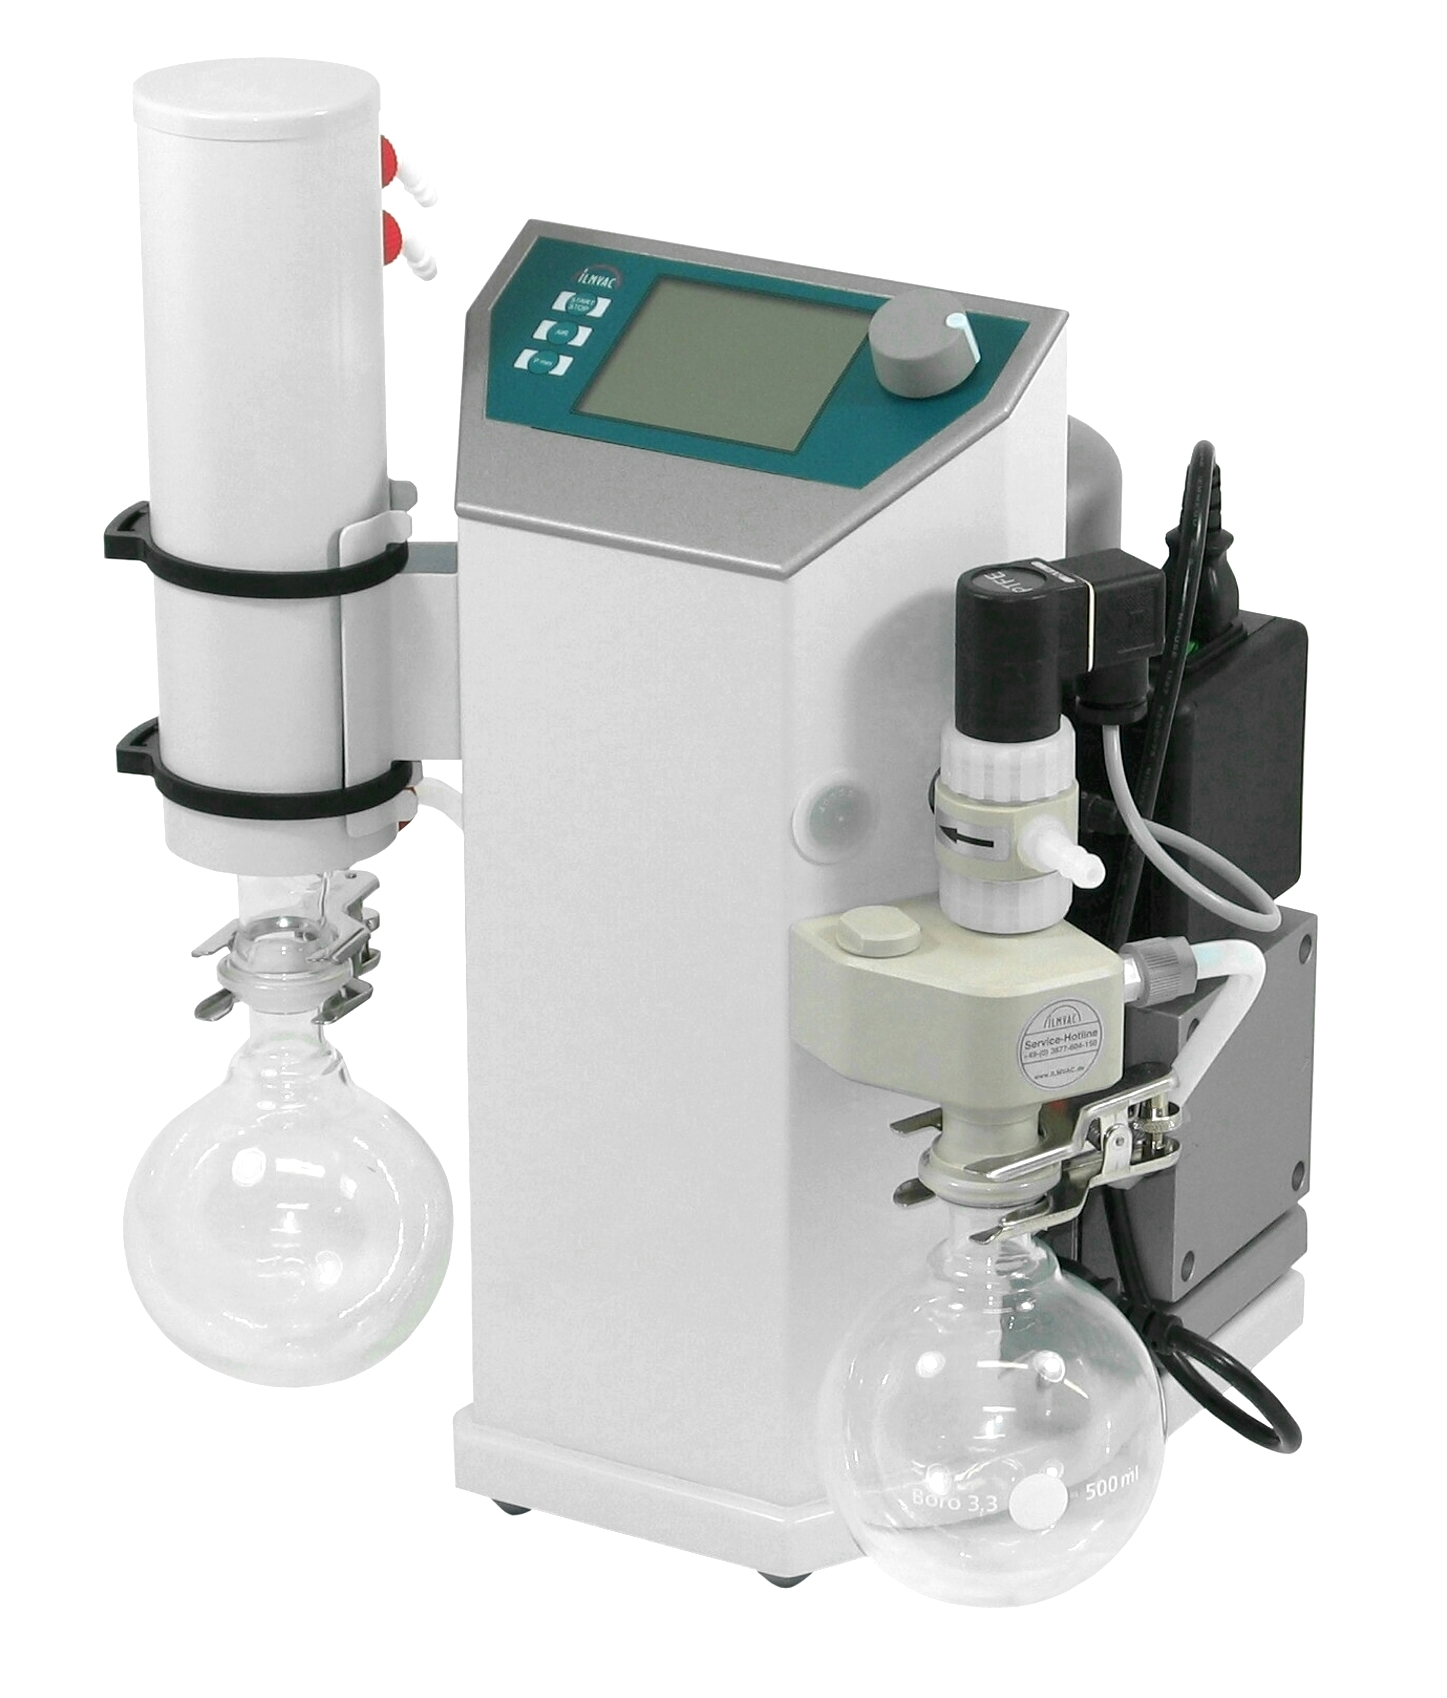 Rotavap vacuum system for solvent distillation and evaporation. Vacuum controlled by varying the speed of the pump